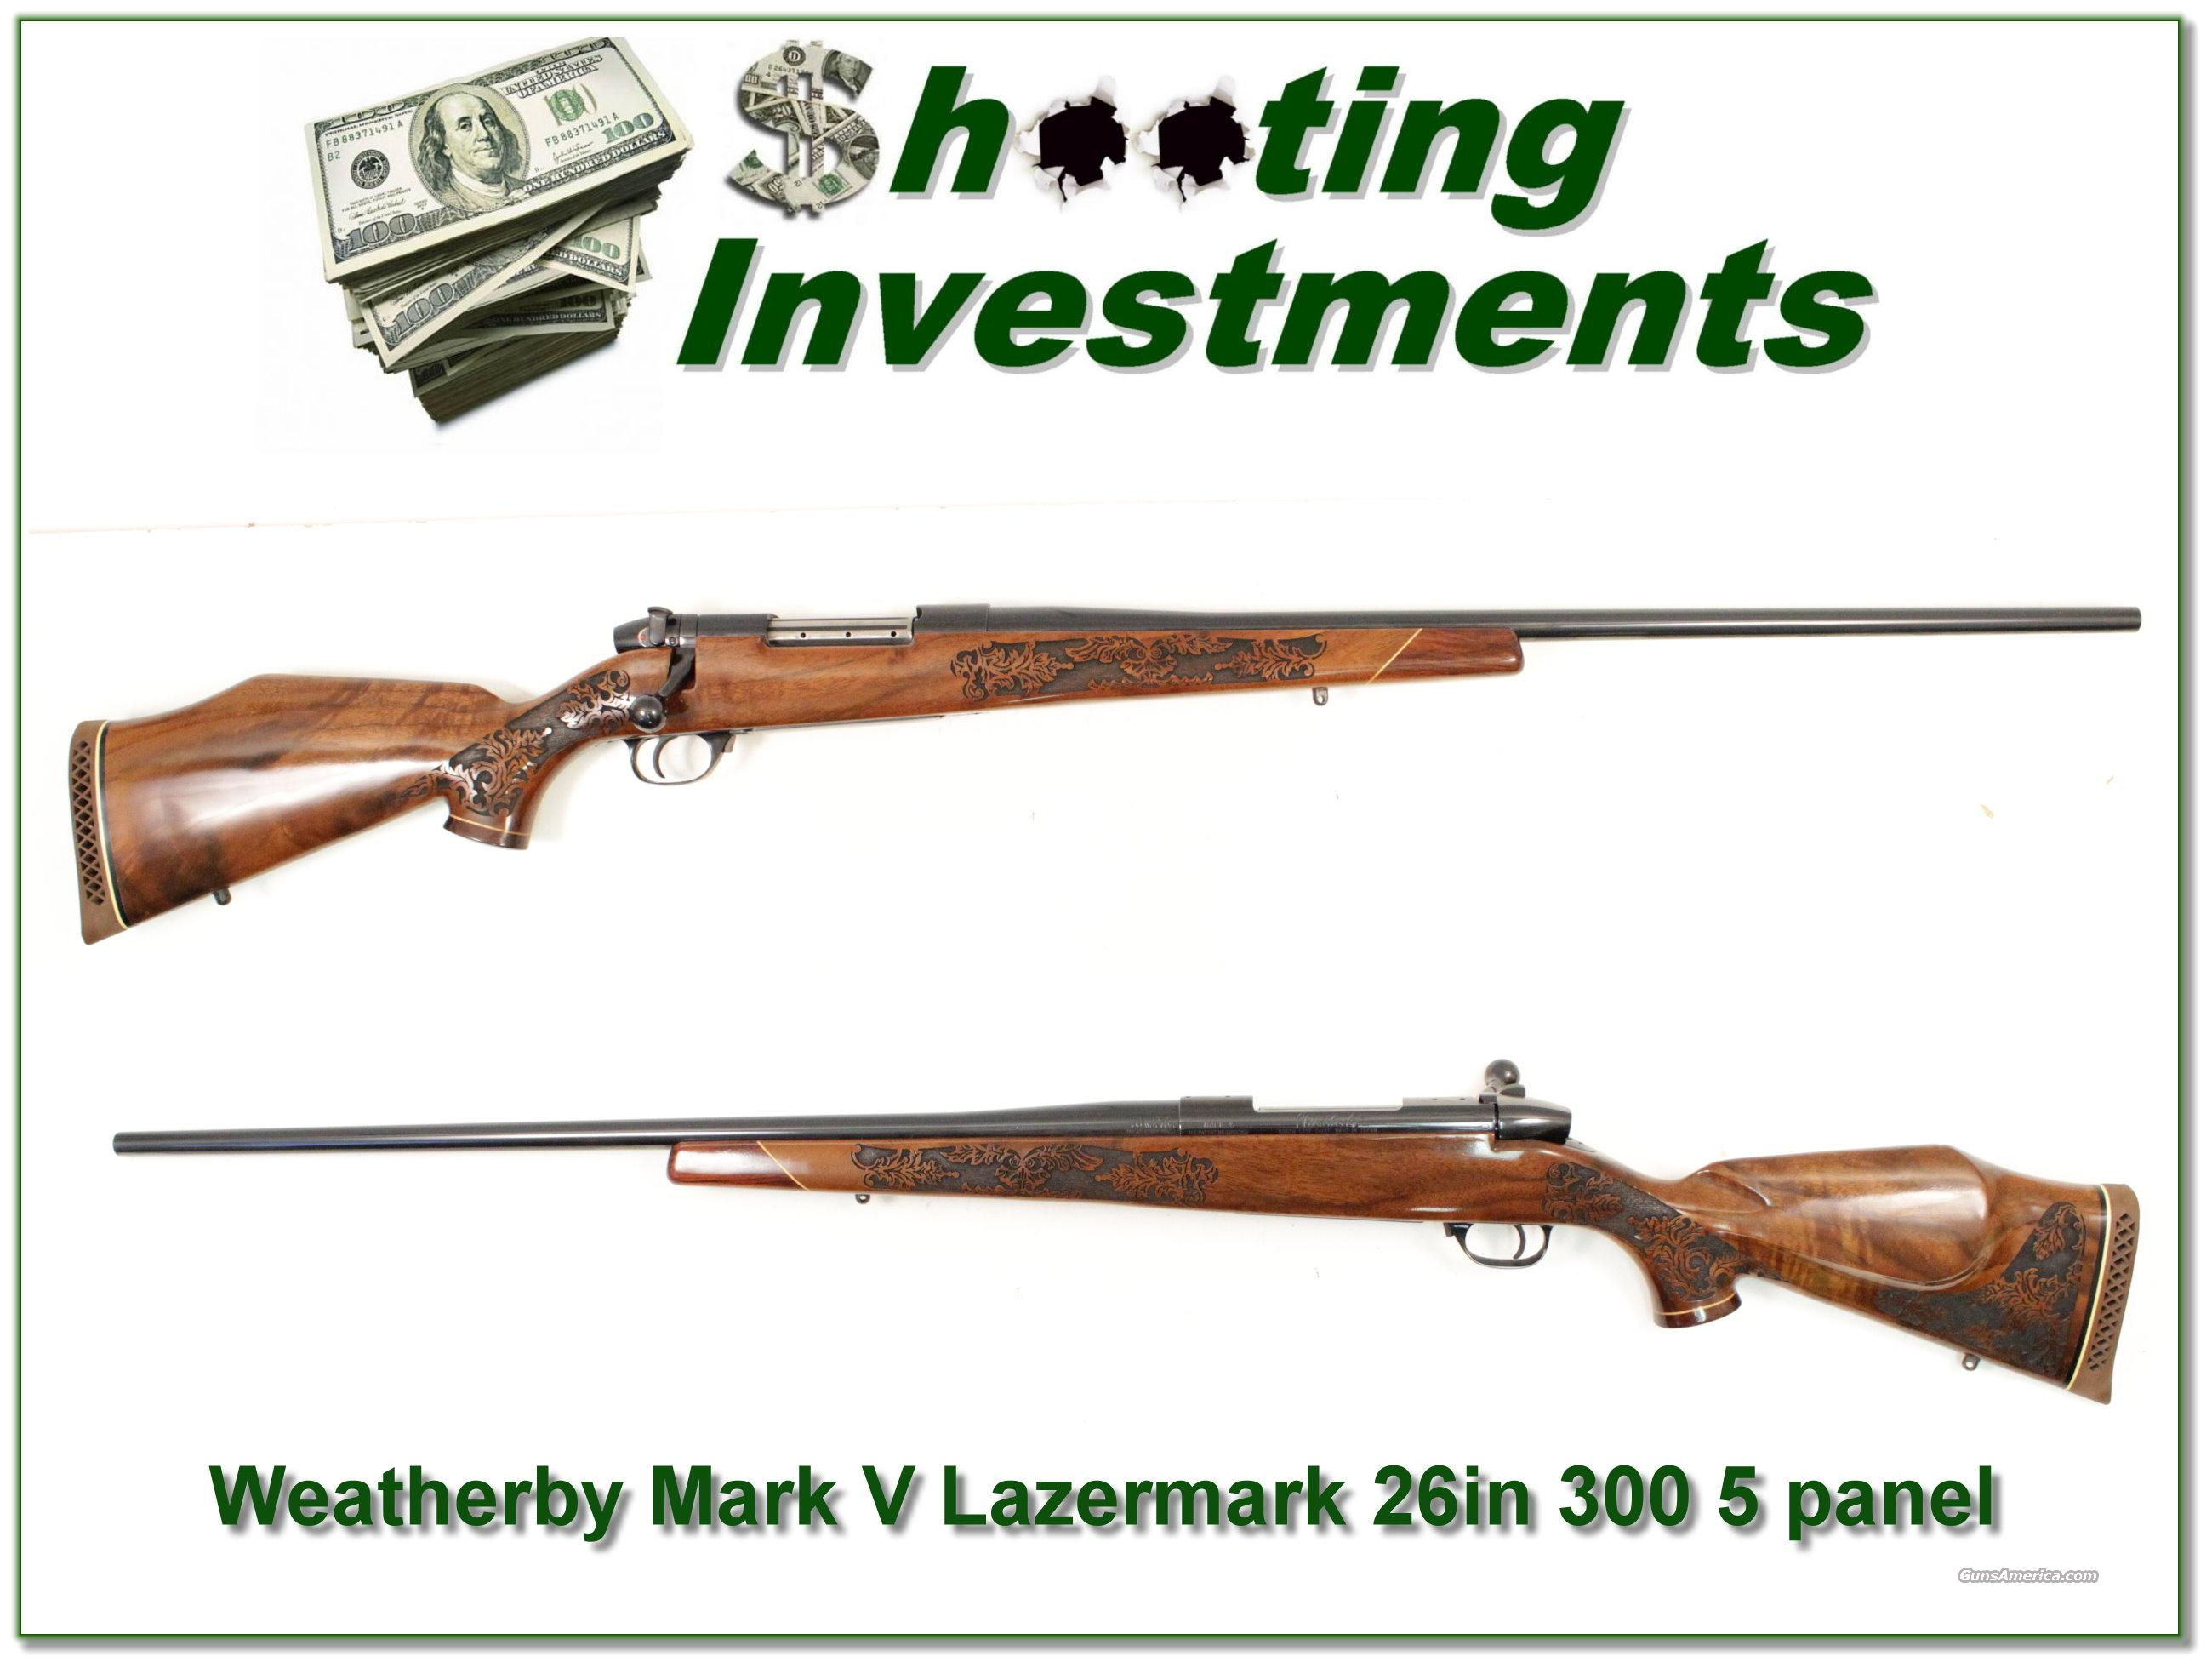 Weathebry Mark V 5 Panel Lazermark 300 26in Exc Cond!  Guns > Rifles > Weatherby Rifles > Sporting